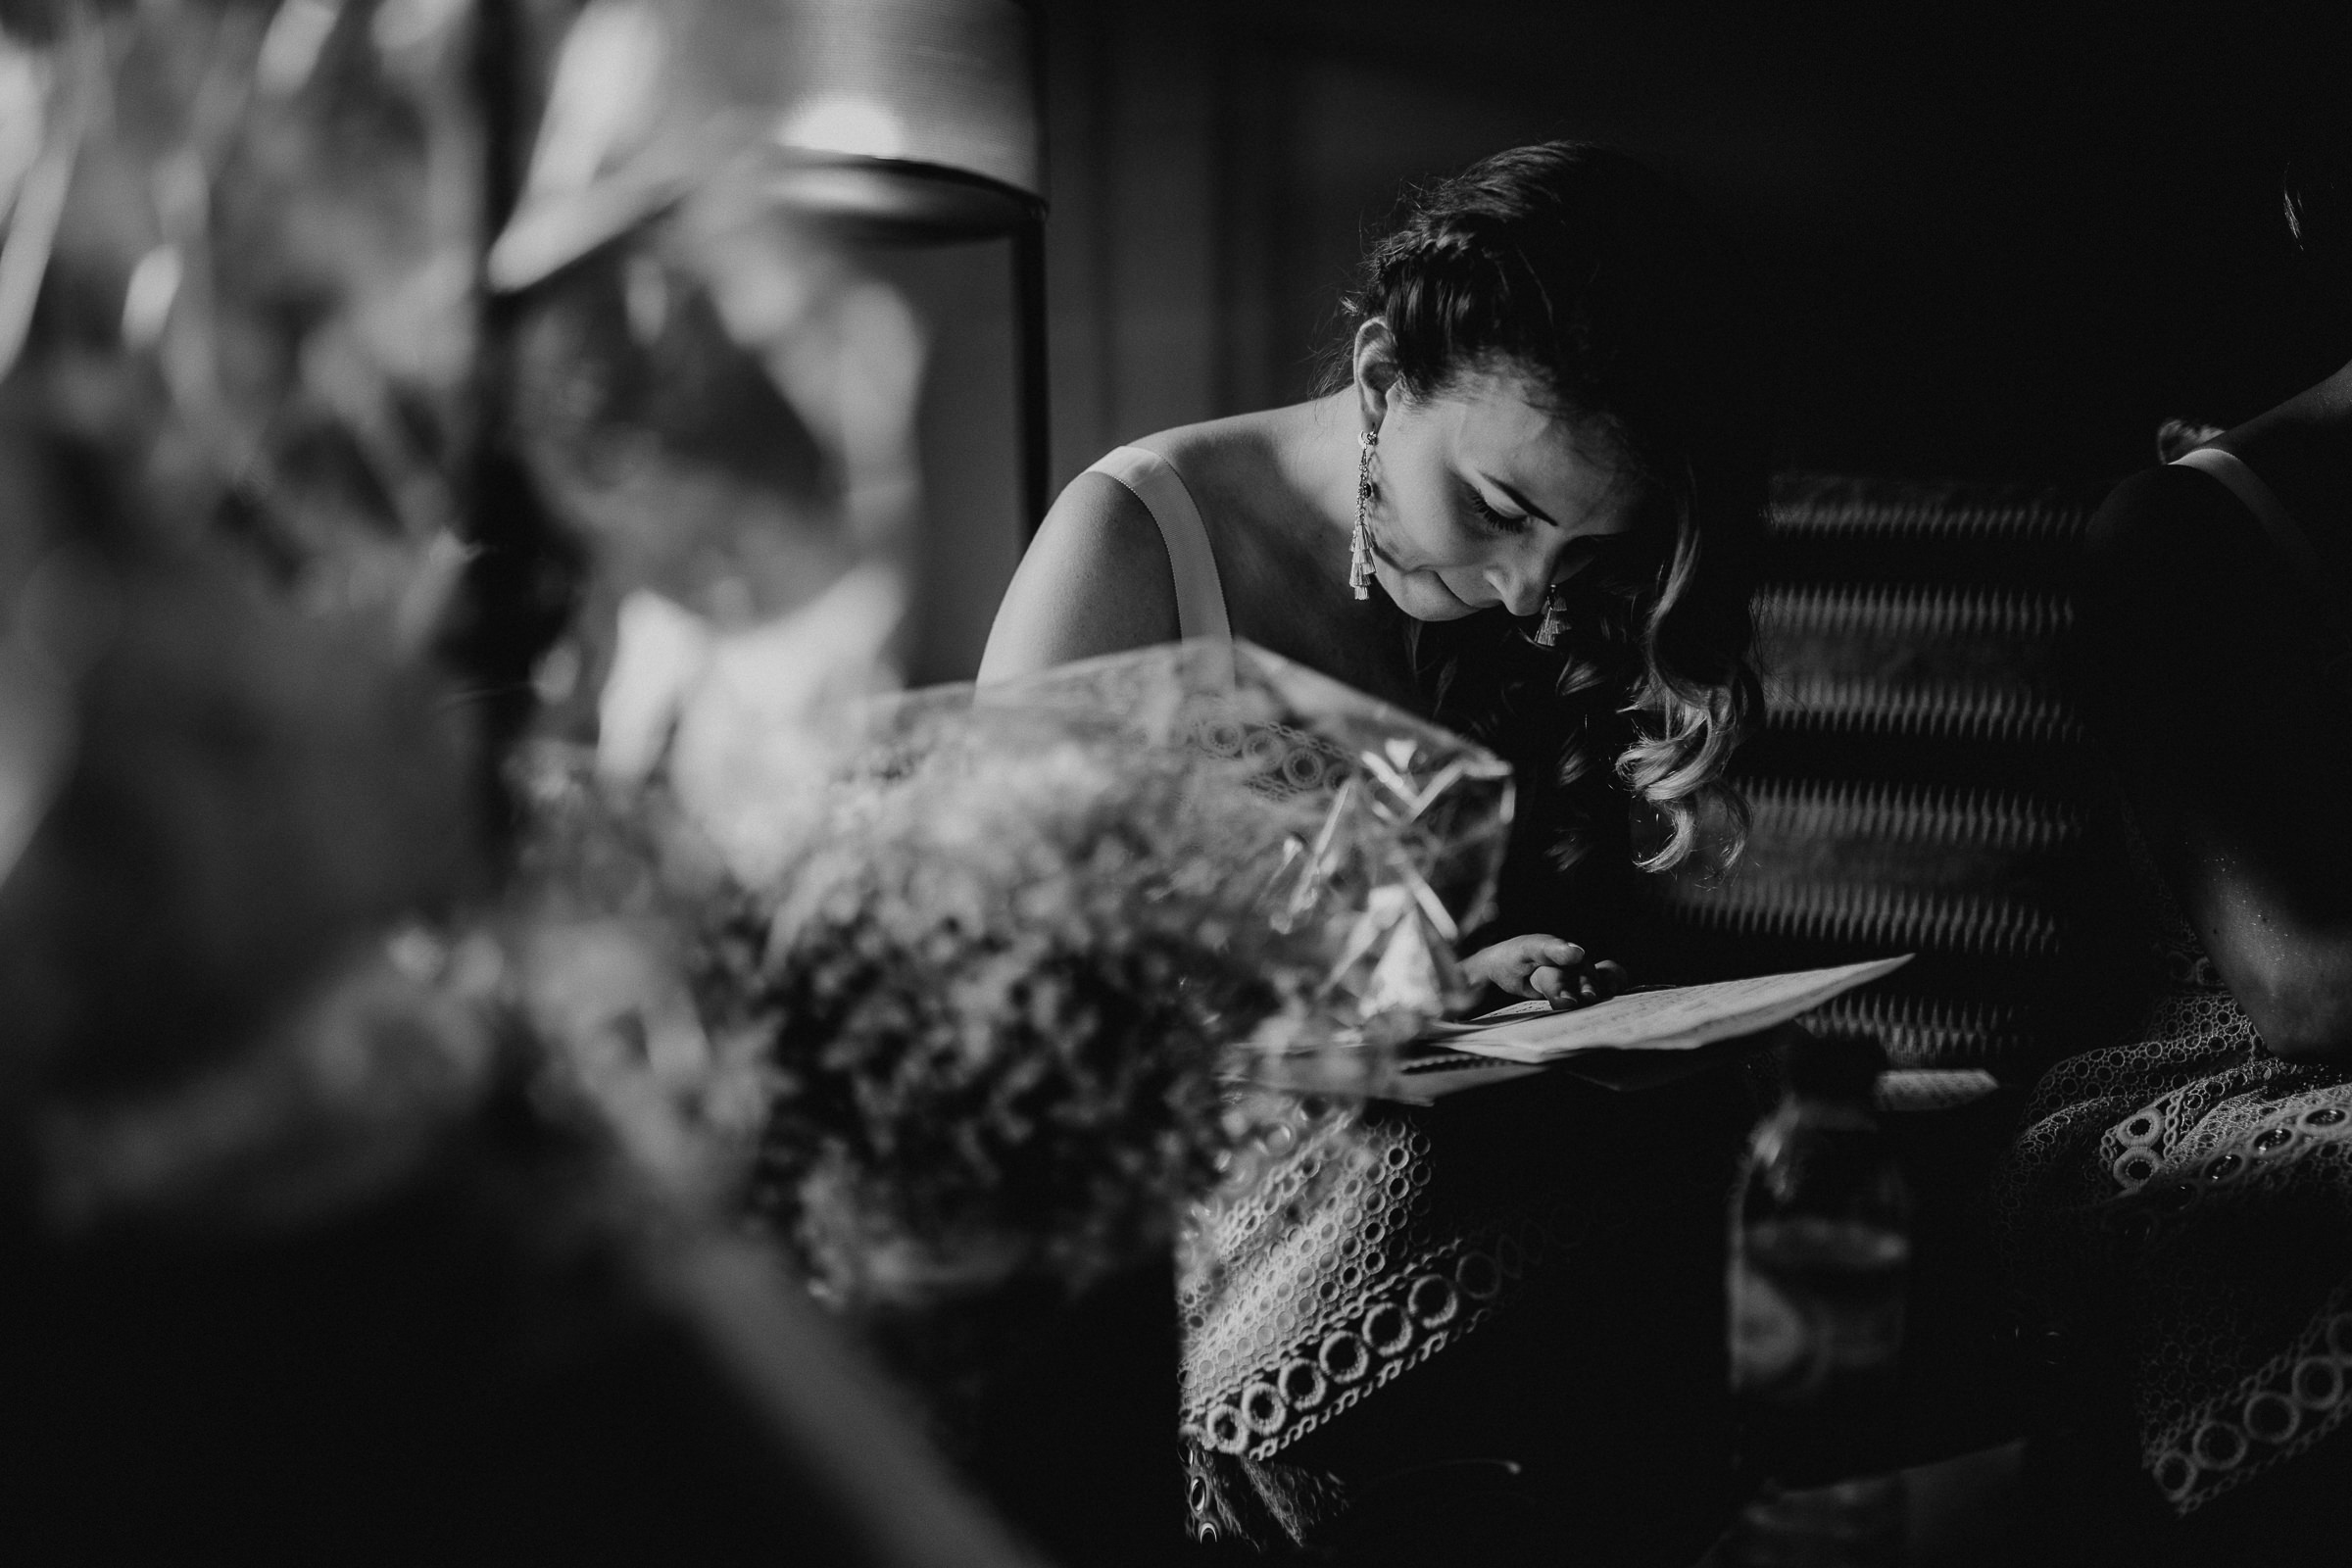 Sited bridesmaid writing her wedding vows on a piece of paper